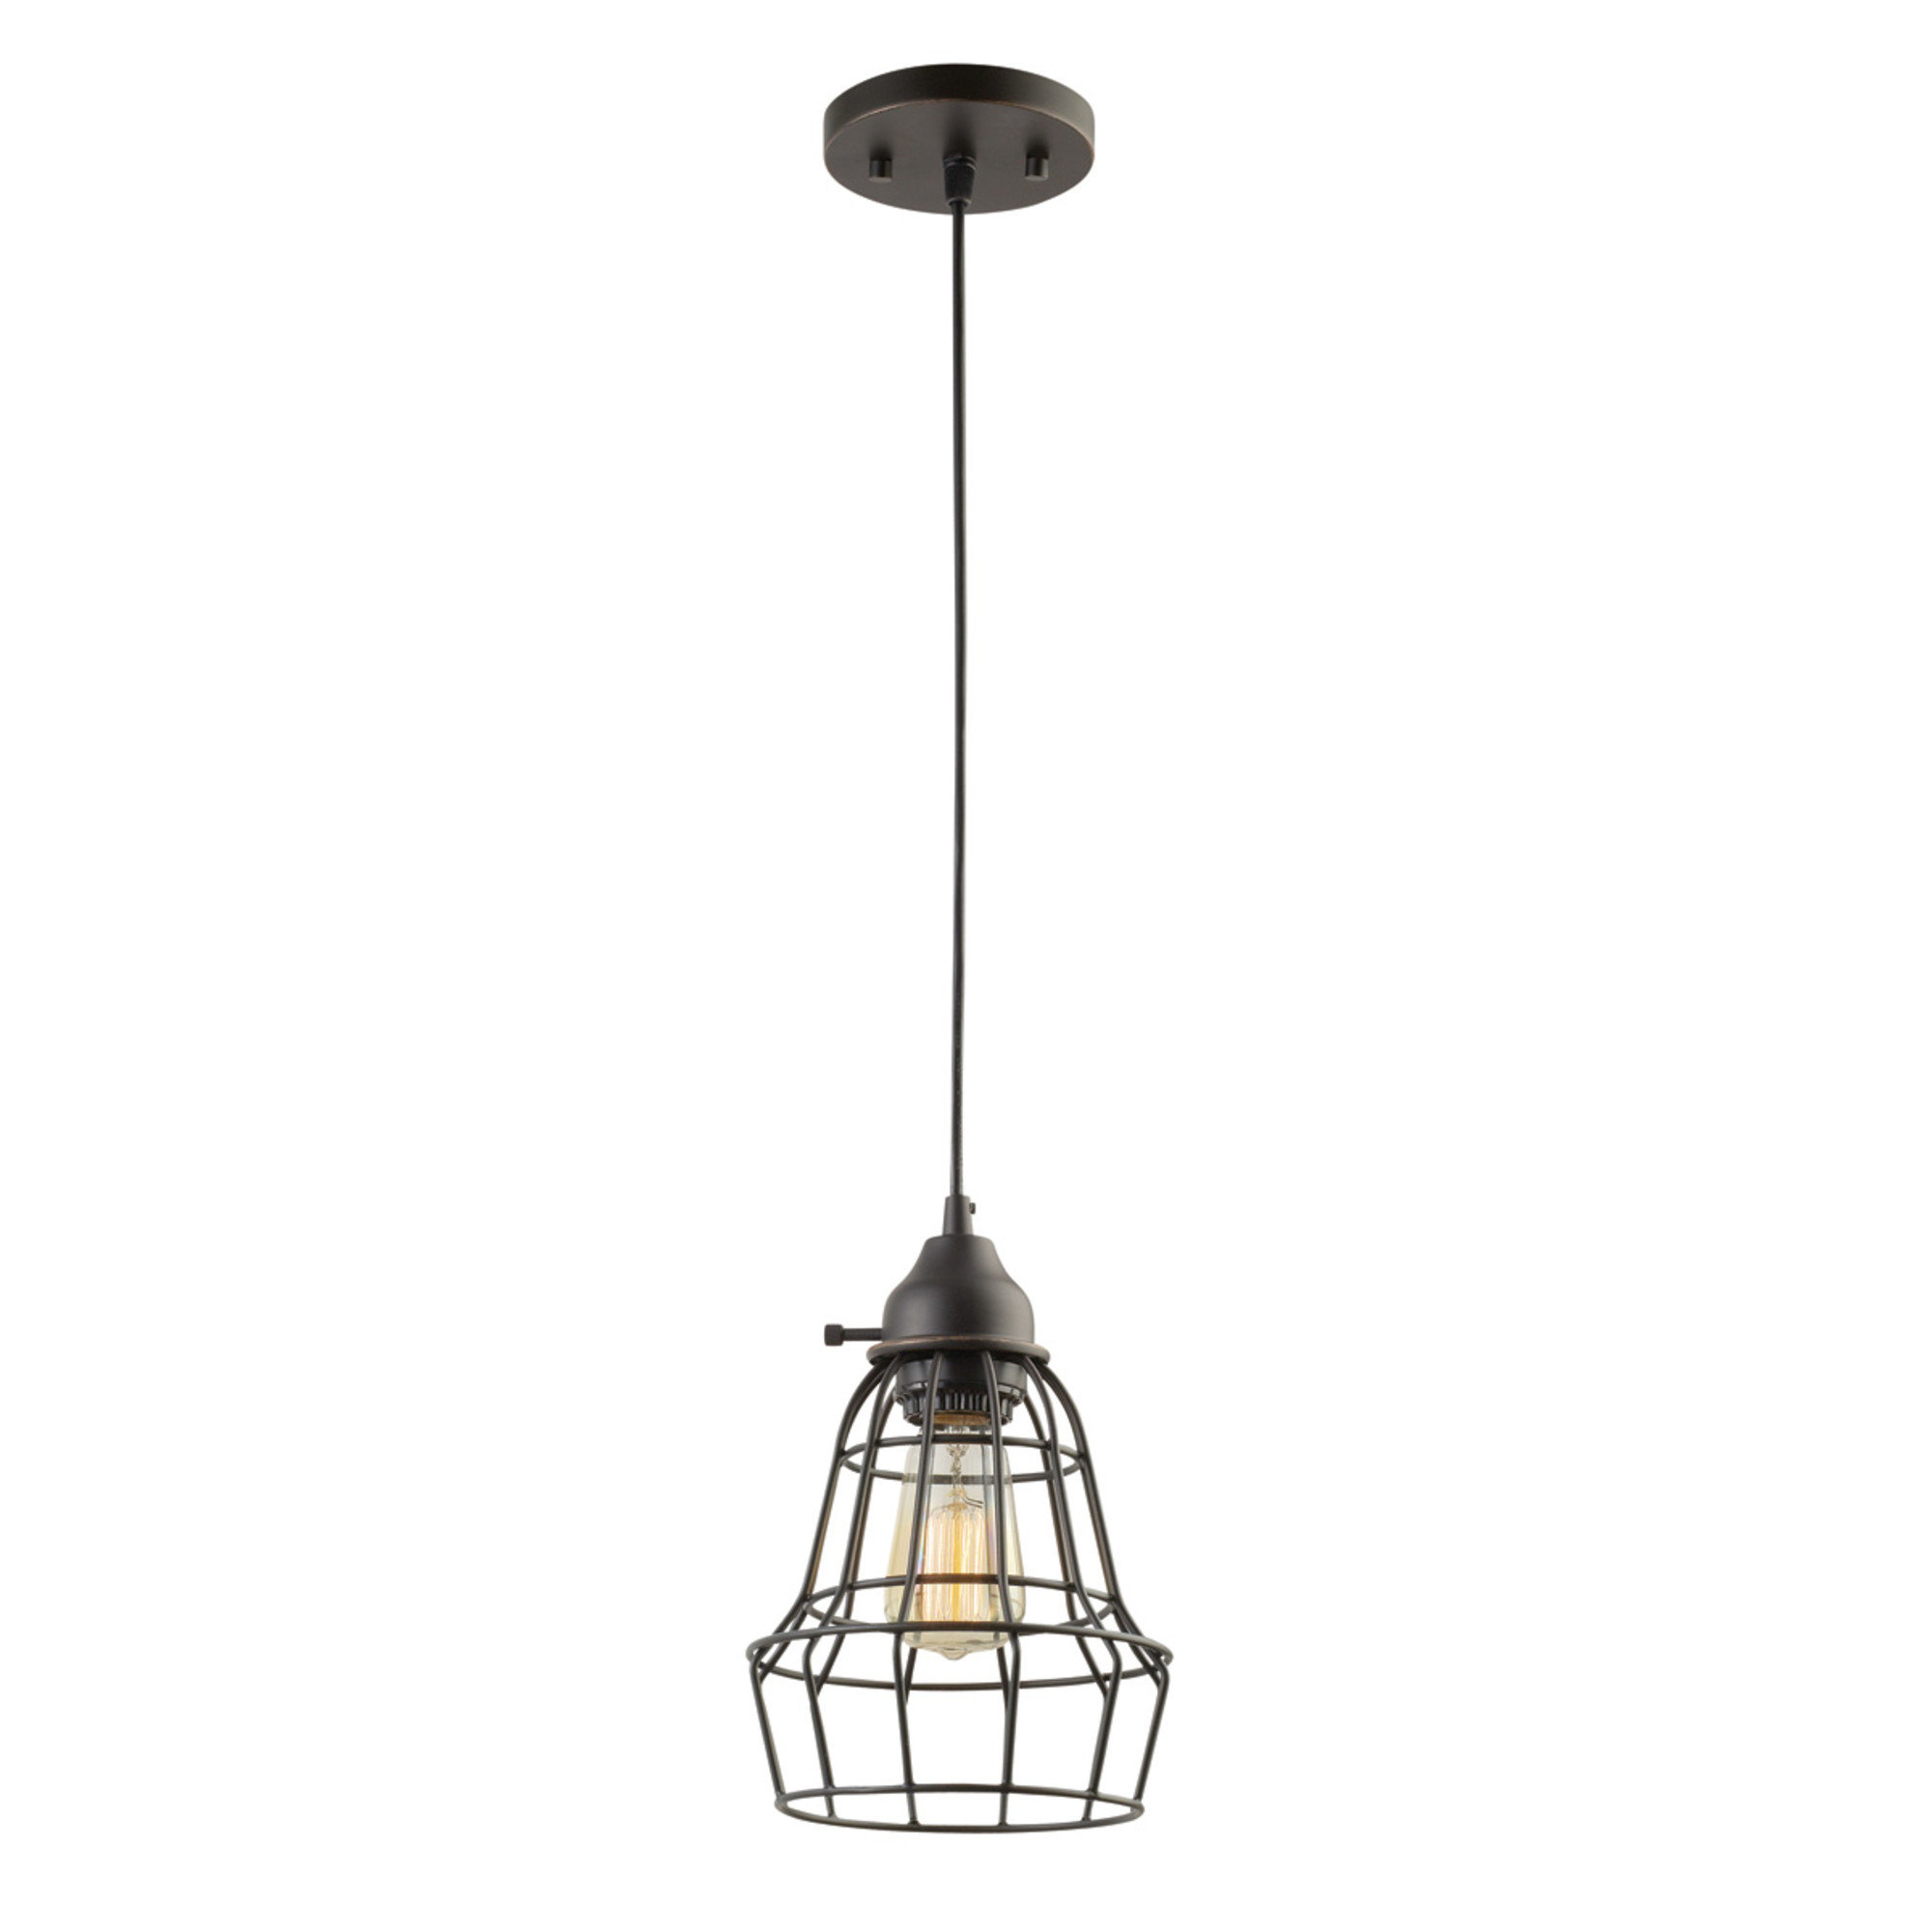 Kathi 1 Light Lantern Pendant With Regard To Most Recently Released Stetson 1 Light Bowl Pendants (View 21 of 25)